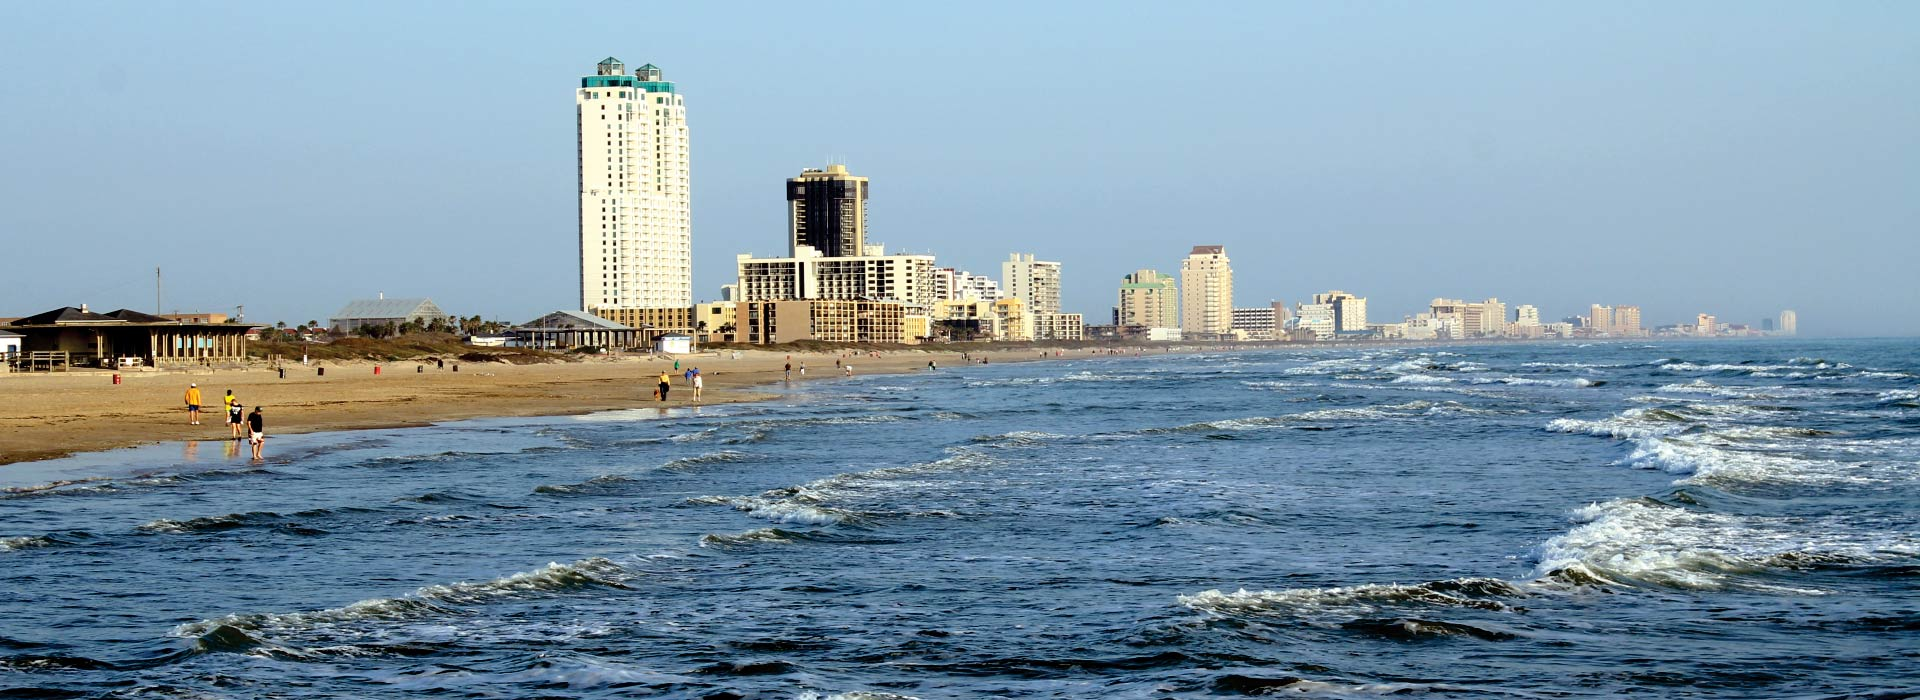 South Padre Island Beach Image